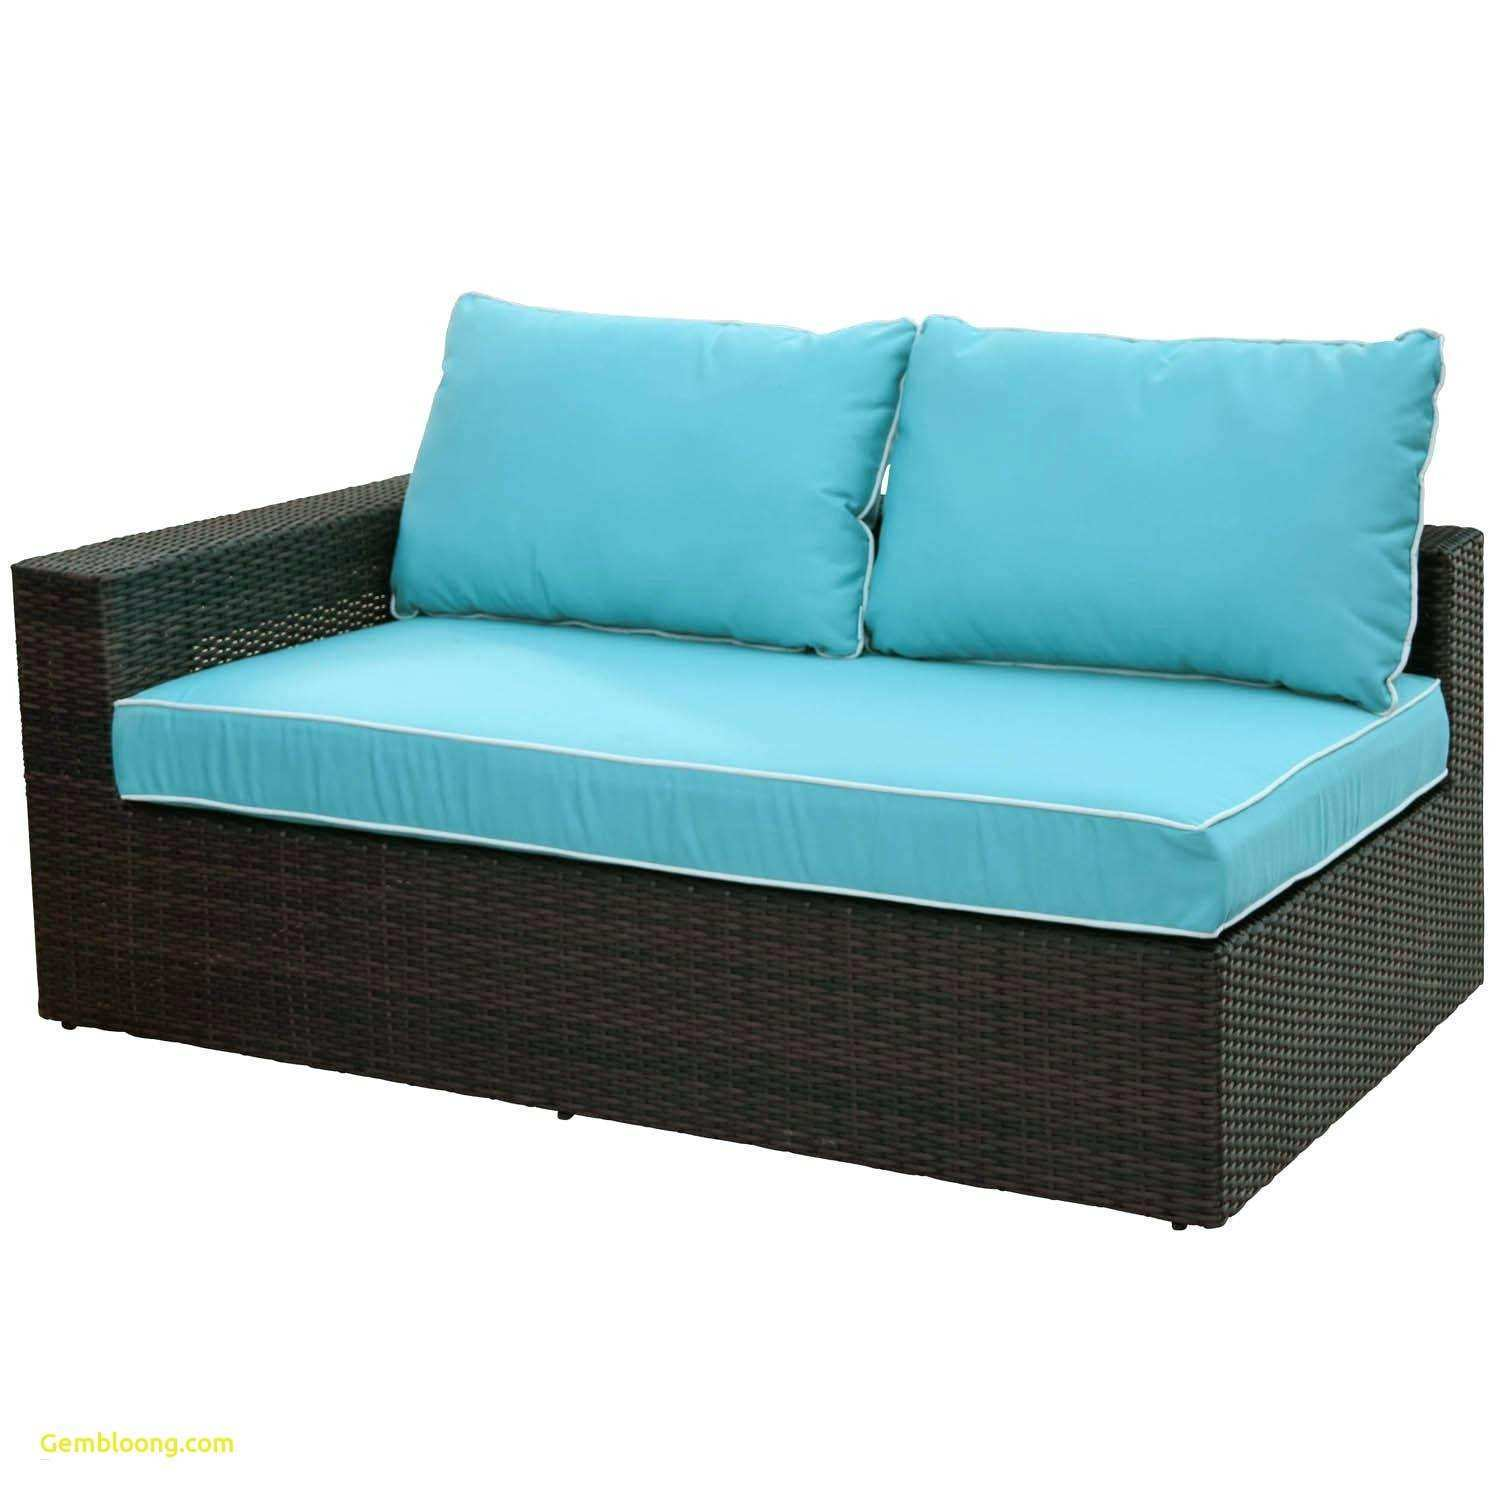 Home Design Resin Patio Chairs Awesome Appealing Outdoor Couch